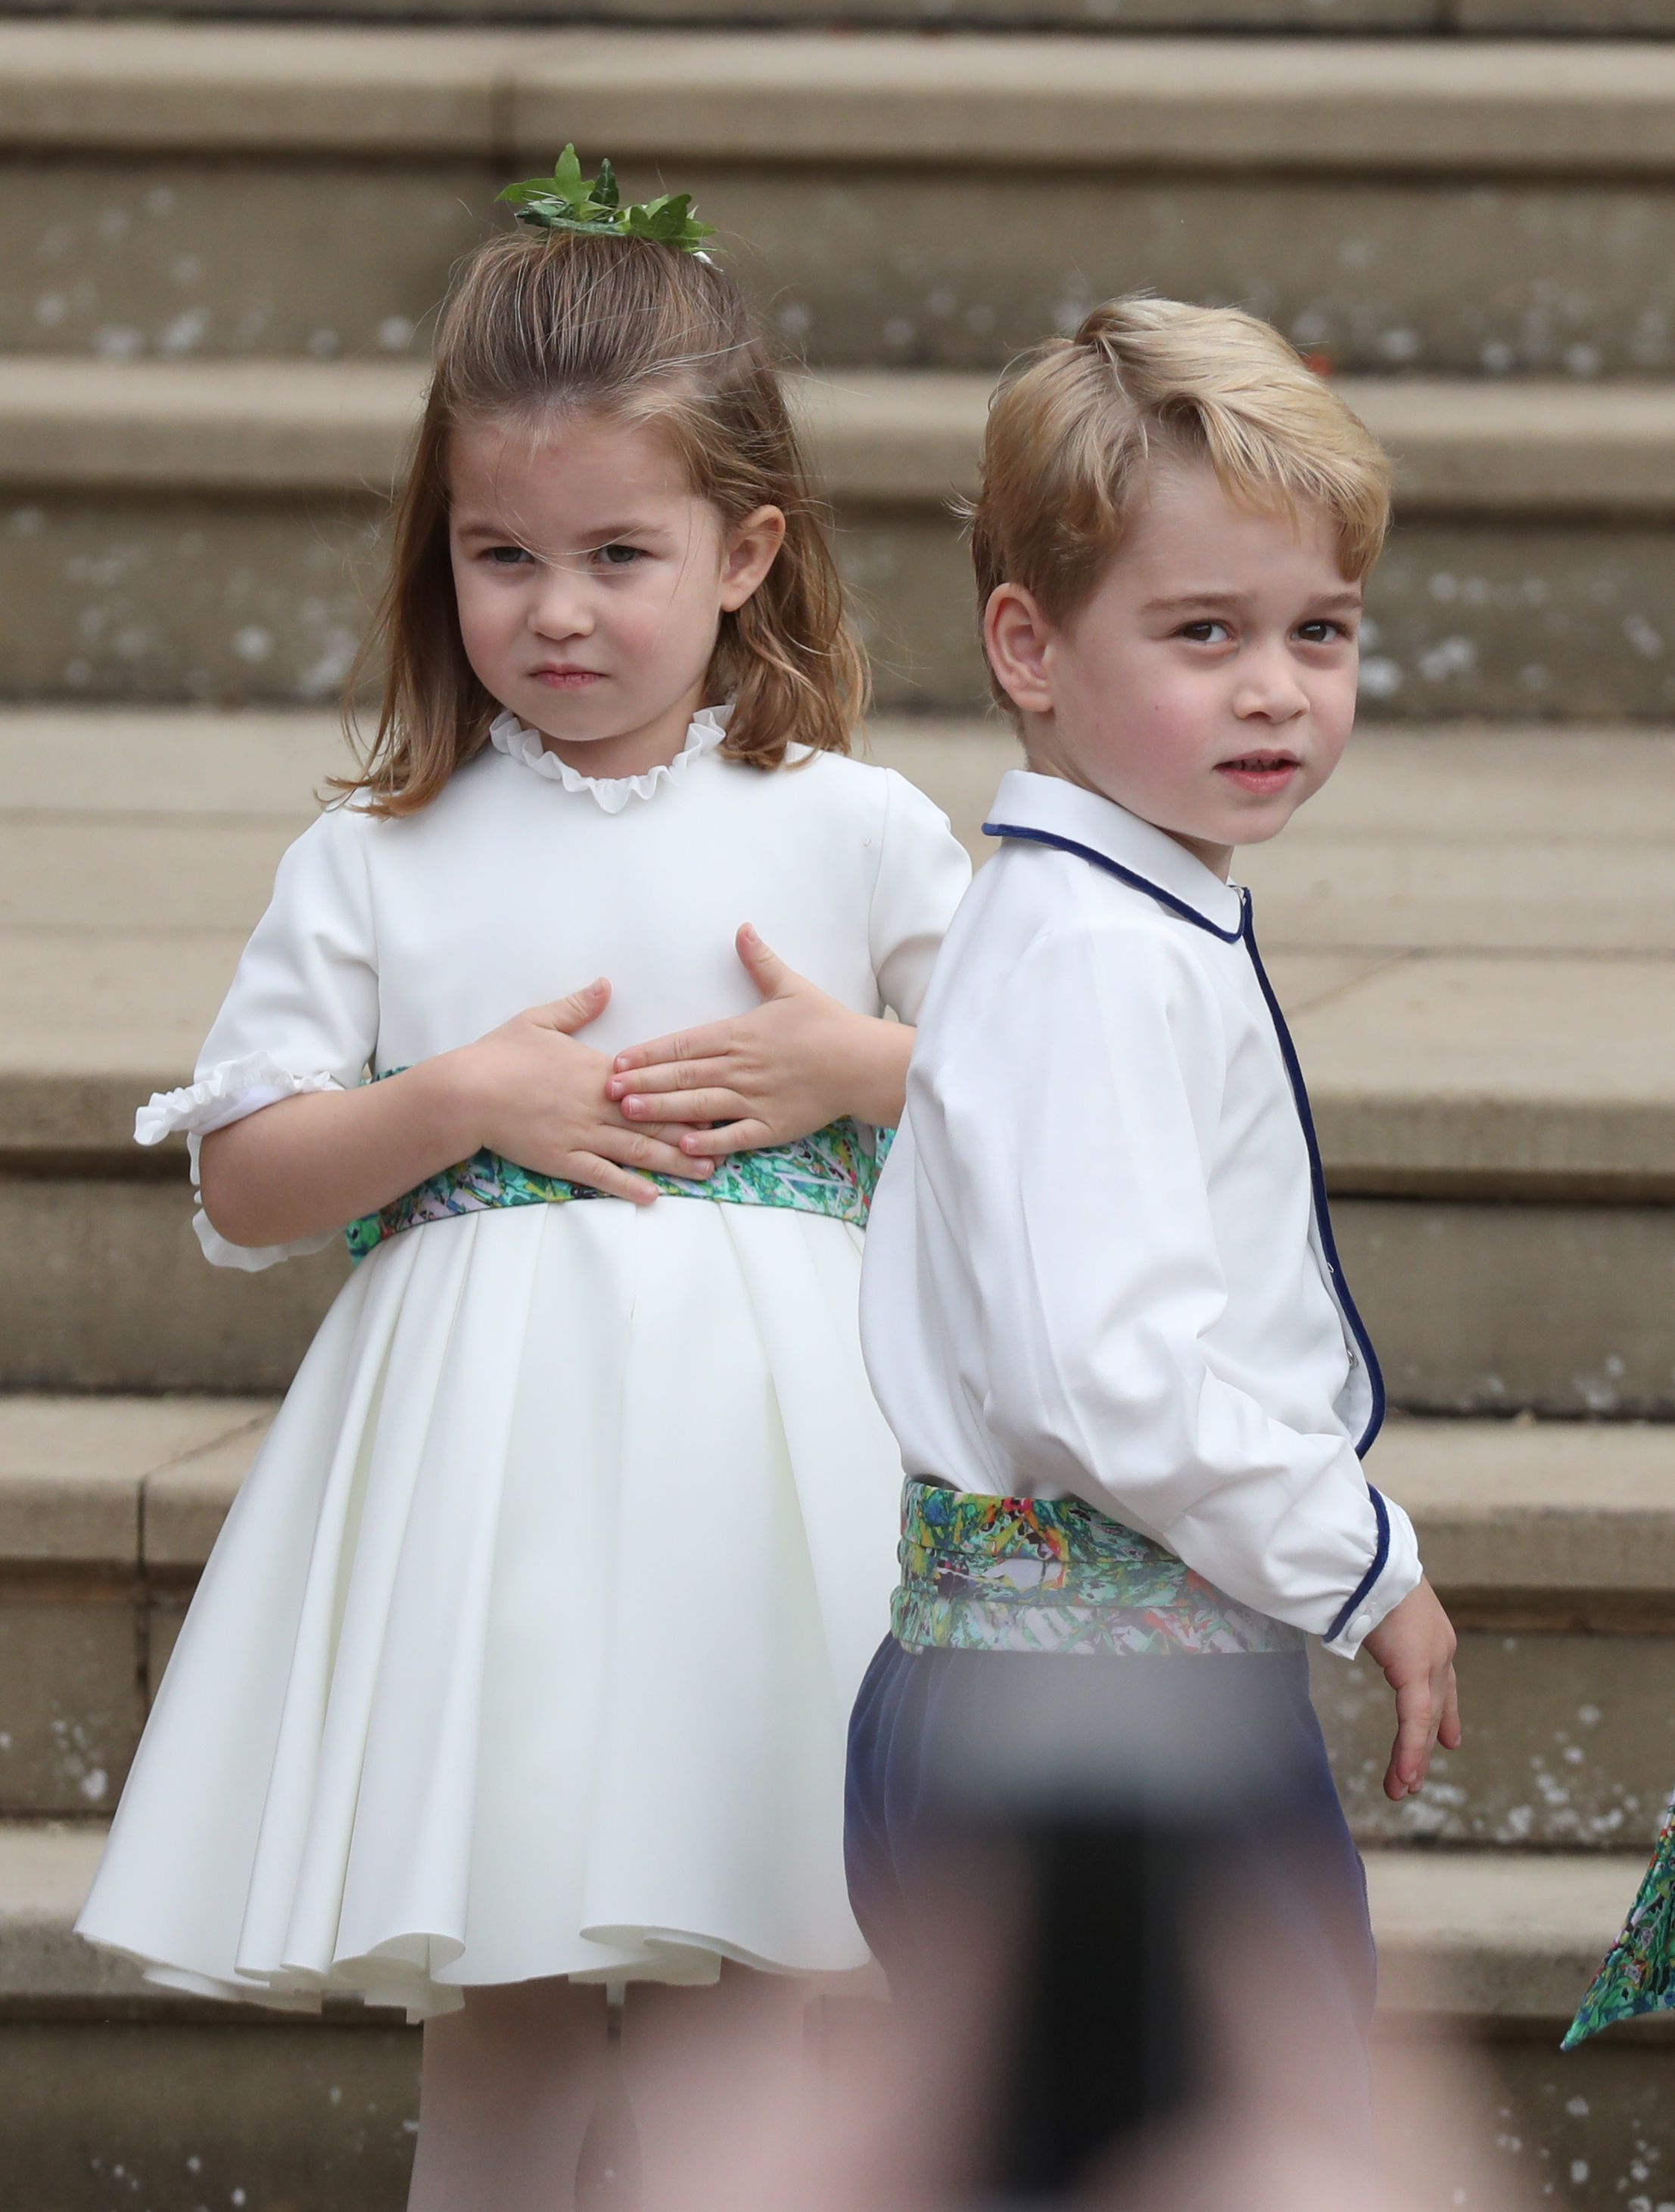 Prince George and Princess Charlotte were a part of the wedding party at the royal wedding of Princess Eugenie and Jack Brooksbank.